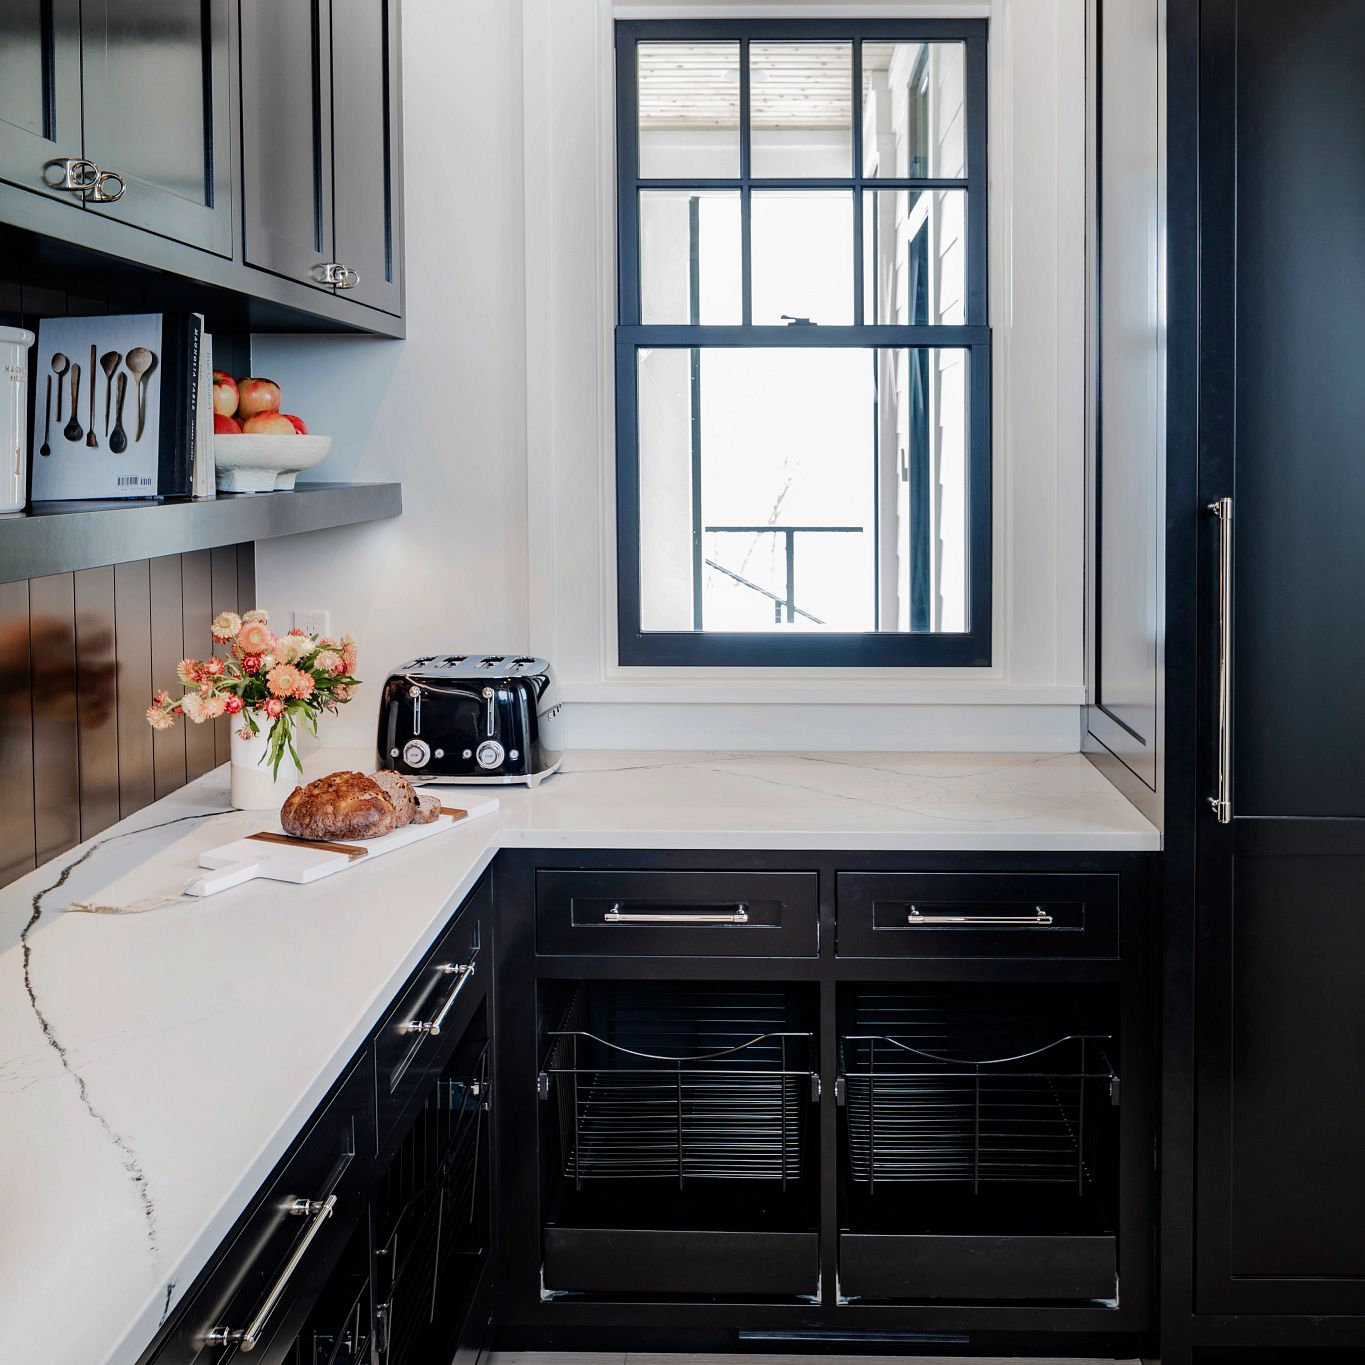 A kitchen with black cabinets  Description automatically generated with low confidence